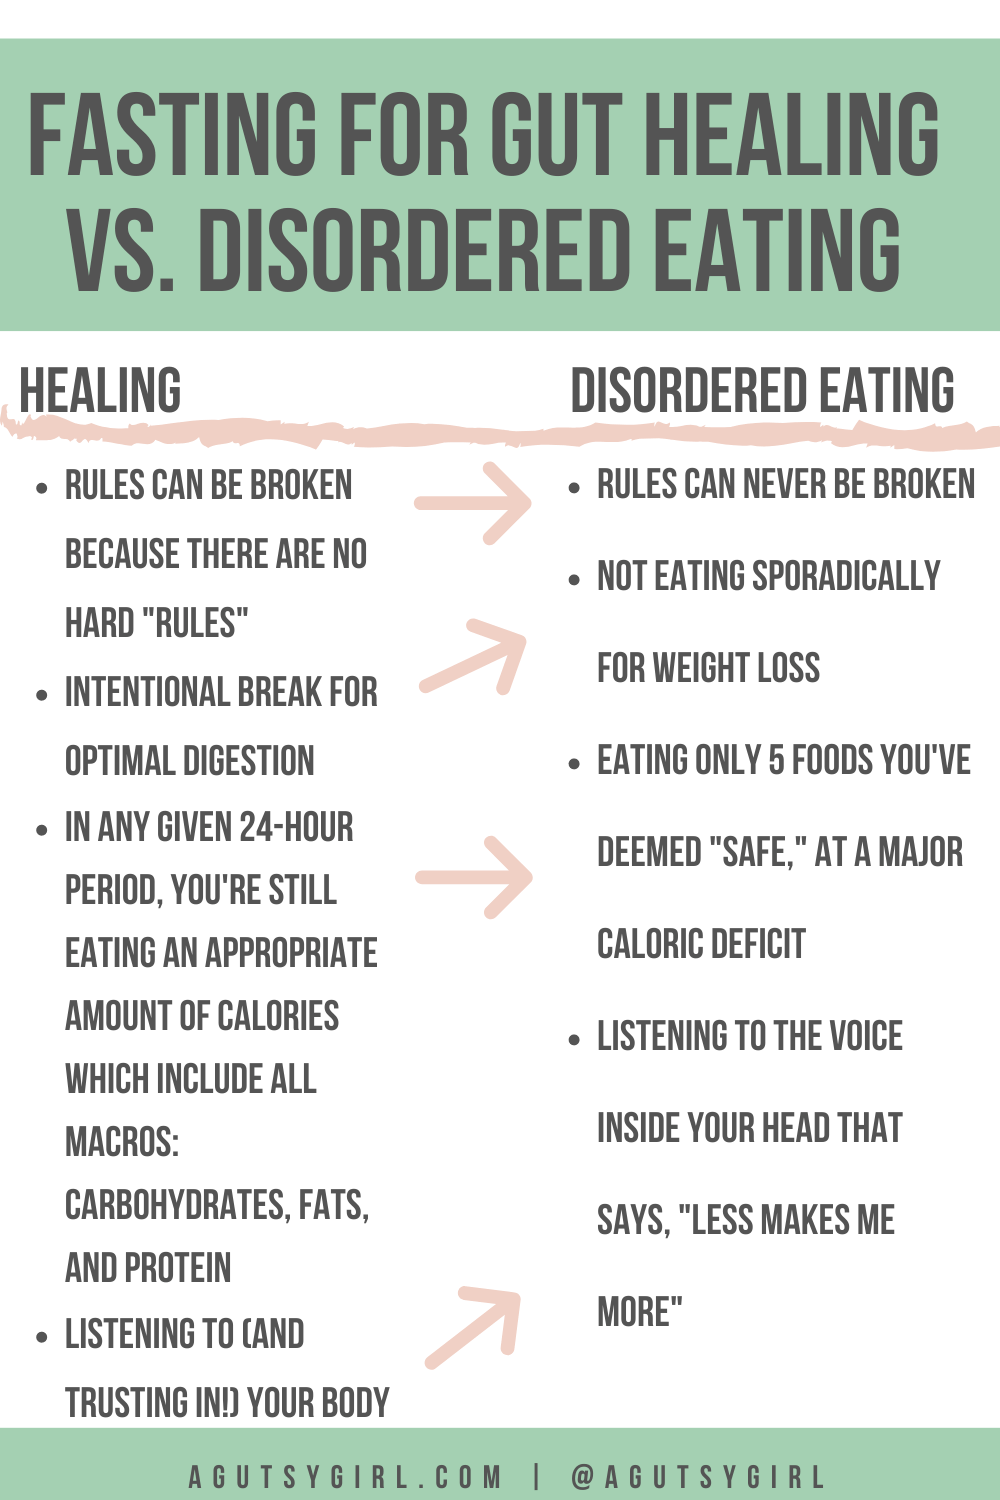 Fasting for Gut Healing agutsygirl.com #intermittentfasting #guthealth #fasting vs disordered eating